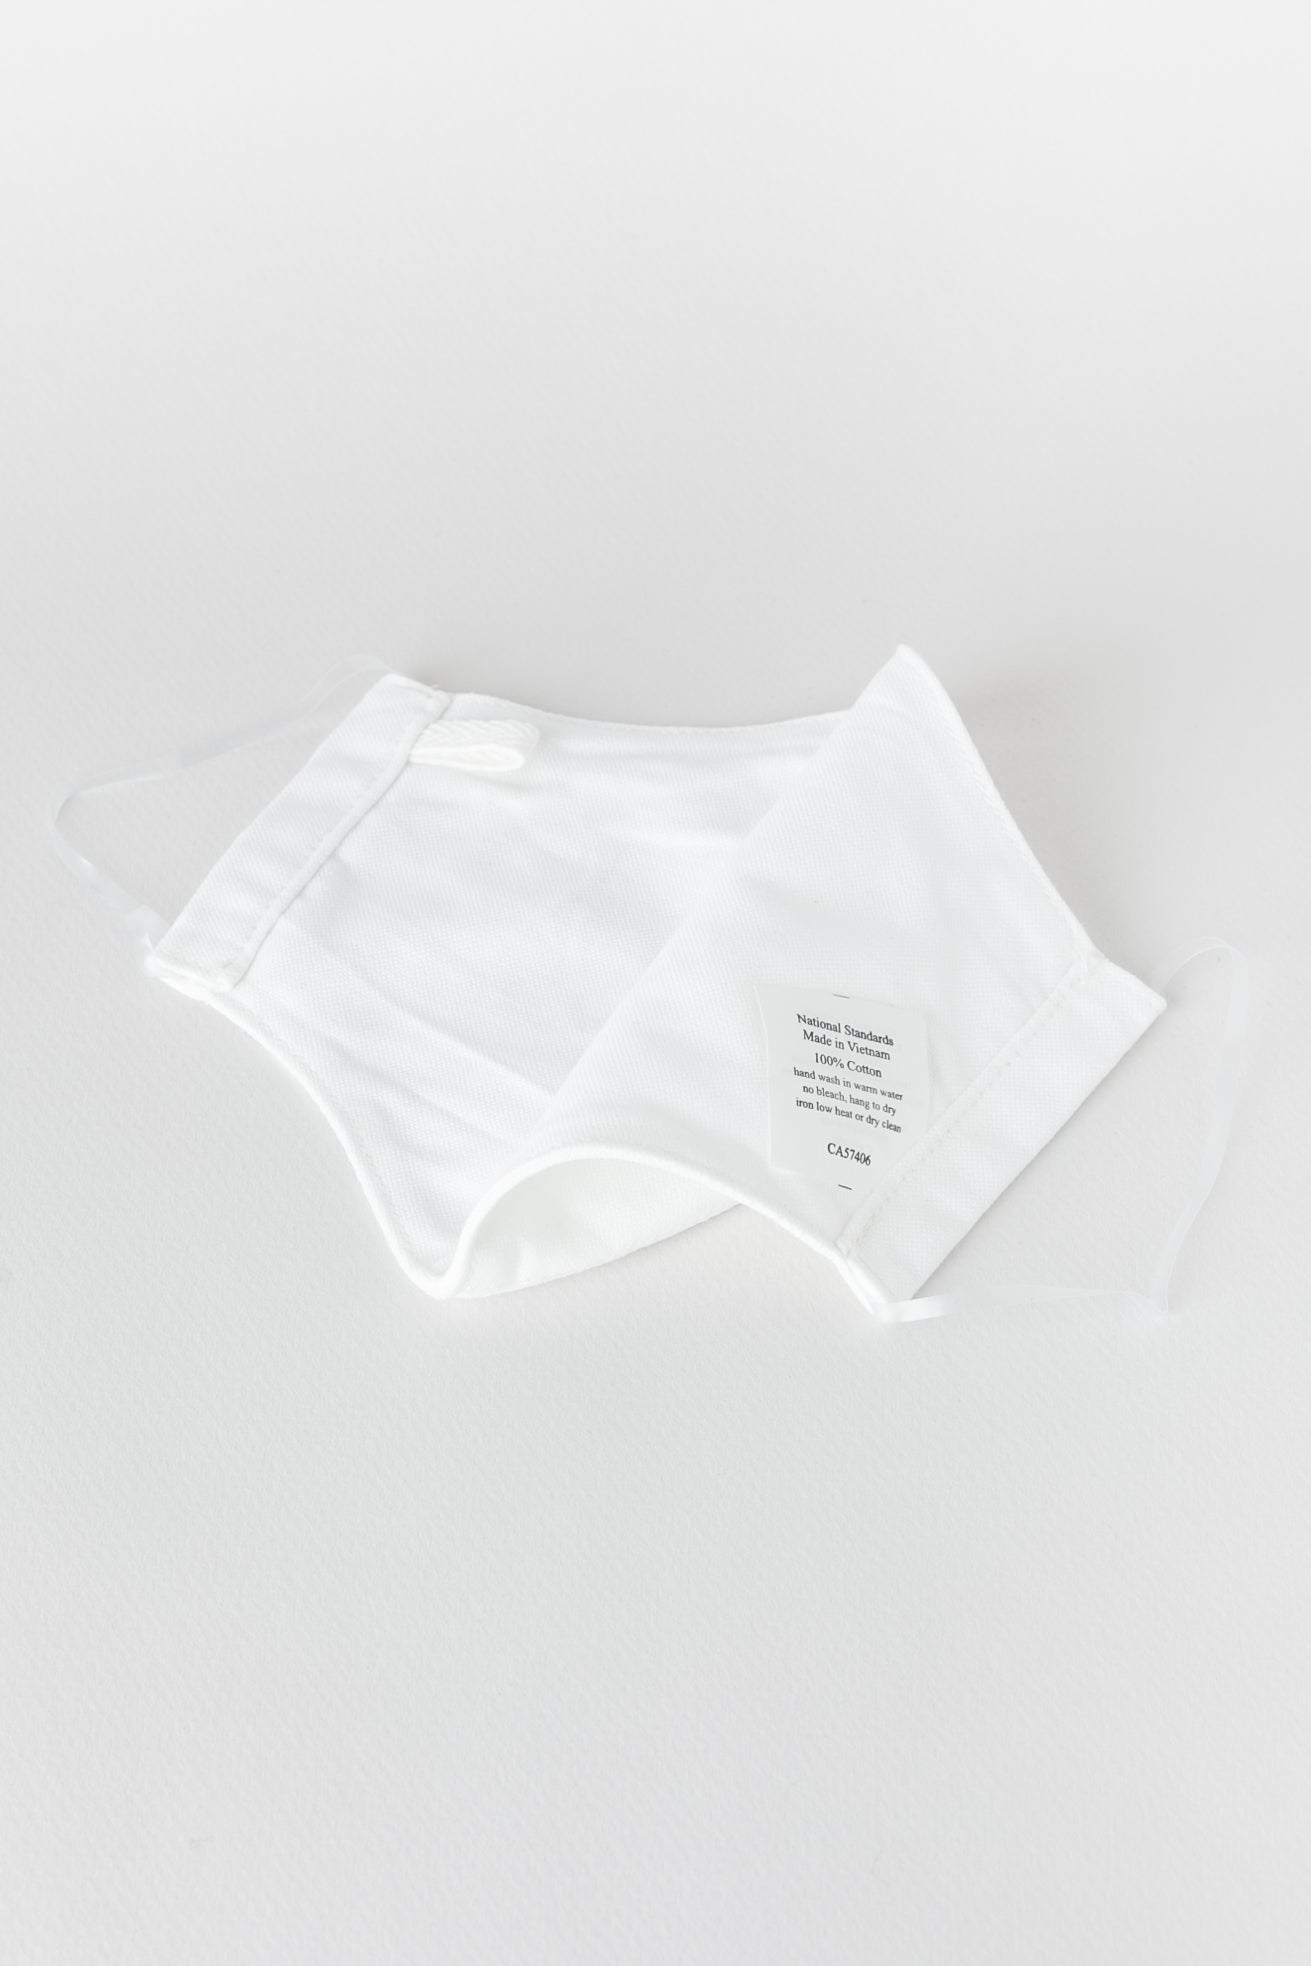 Japanese Oxford Face Mask in White 02